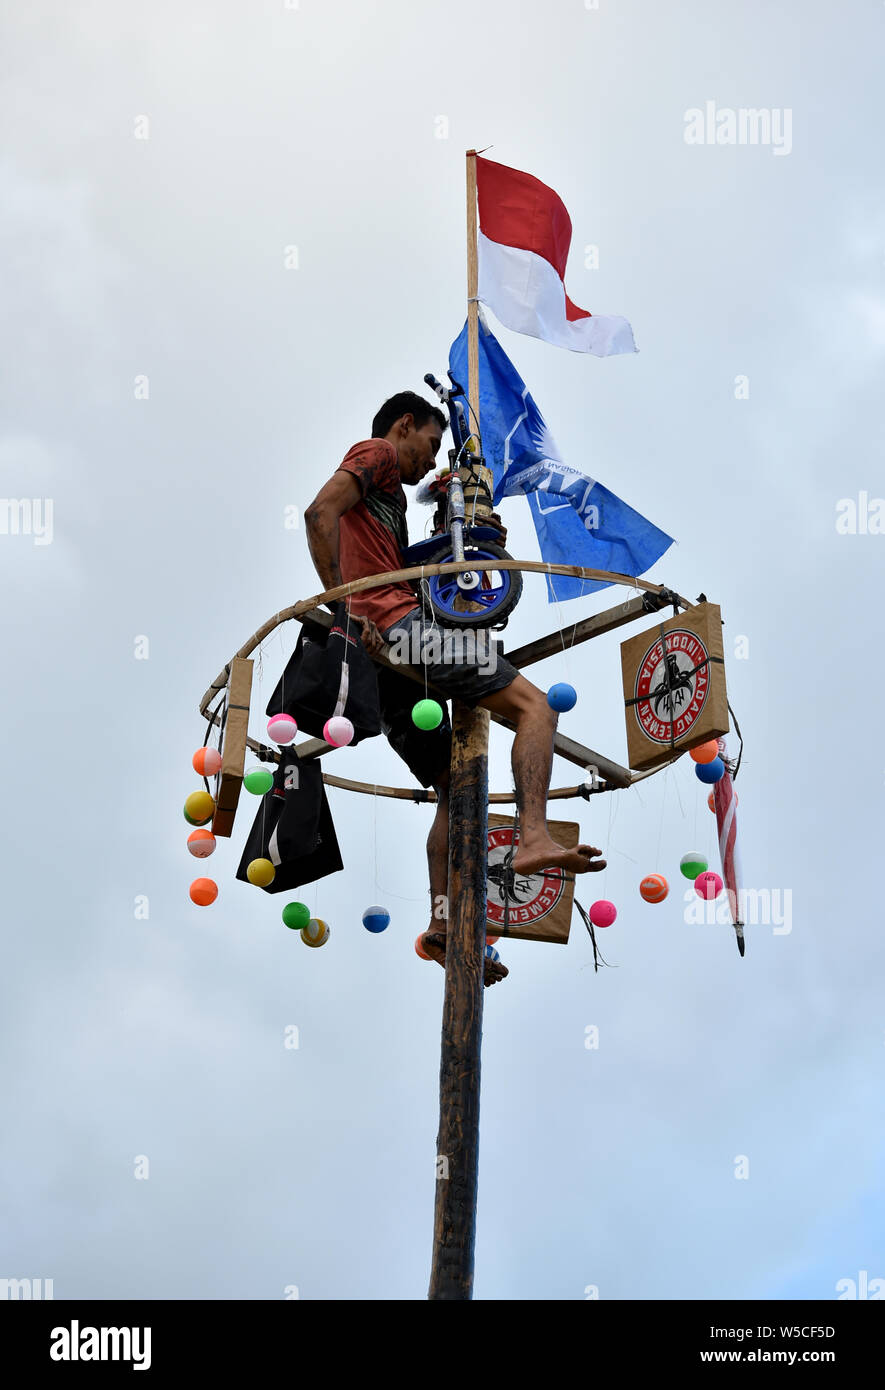 Banda Aceh, Indonesia - August 17, 2017: Celebrated the 70th anniversary of Independence. Man teams try to climb to the top of greased pole. Stock Photo